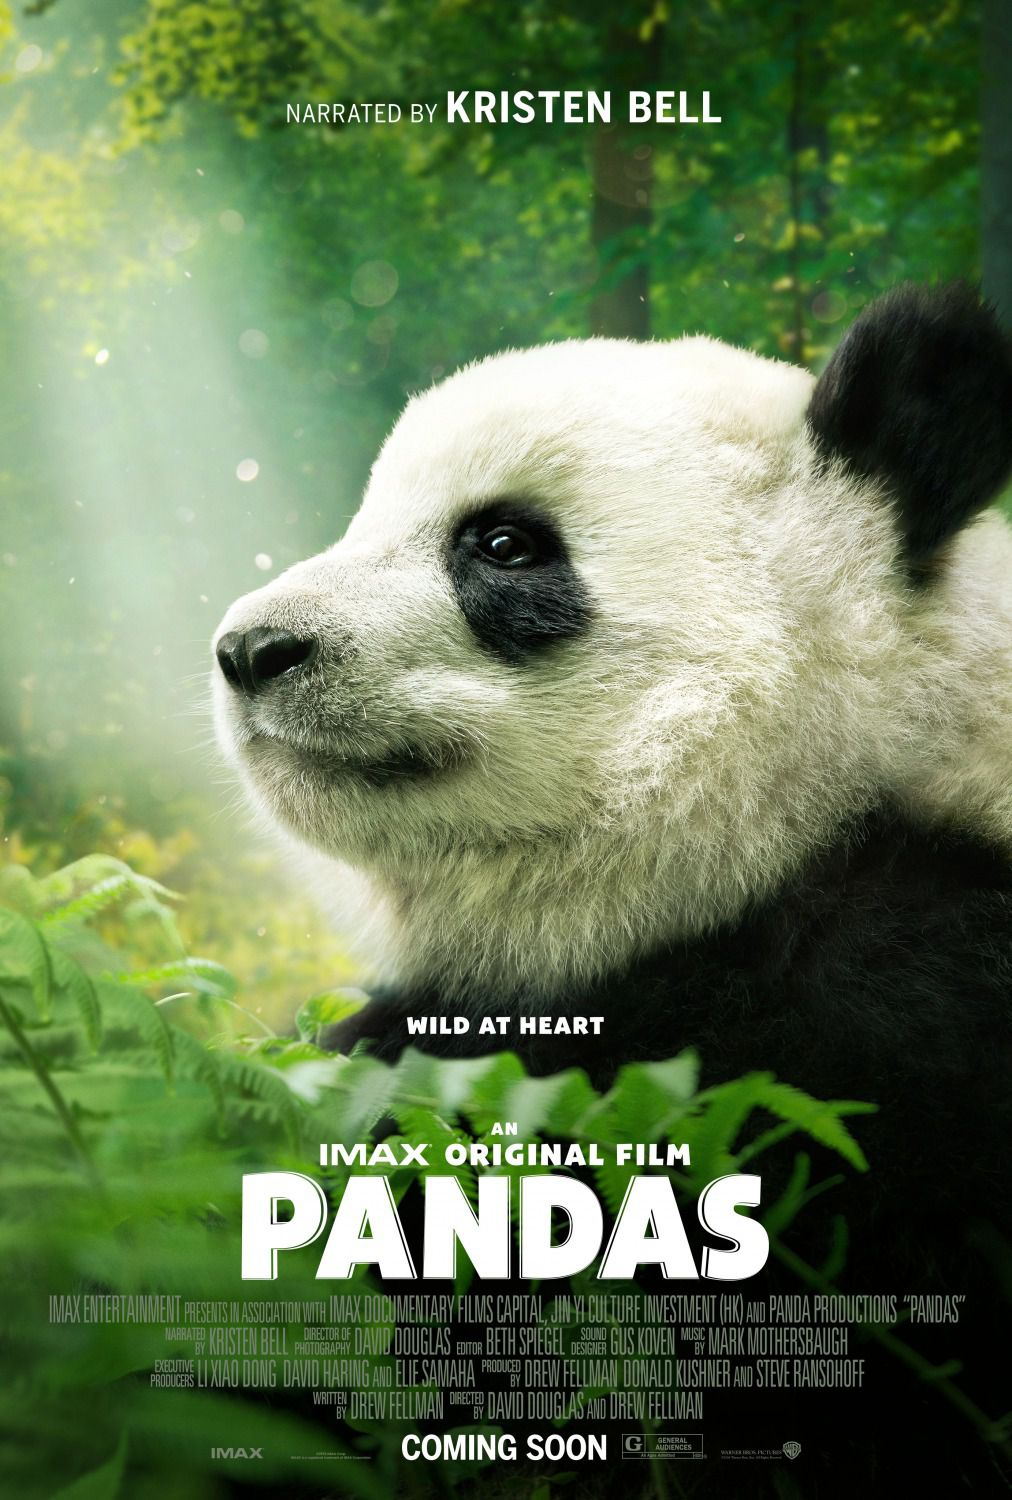 Pandas - Wild at Heart - Special Cutie Docu Film narrated by Kristen Bell - poster 2018